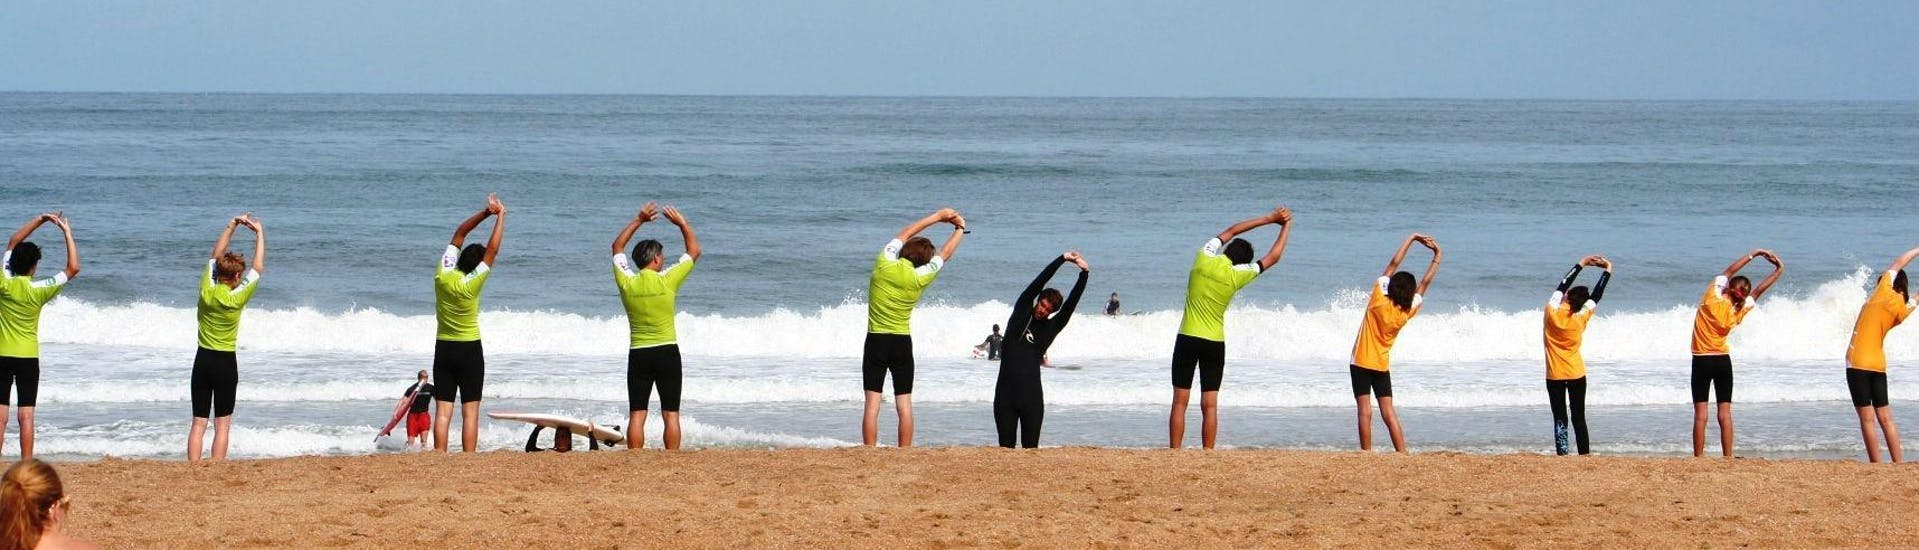 Surfers are warming up on the beach before the start of their Surfing Lessons on the Marinella Beach in Anglet with the surf school Le Club de la Glisse.